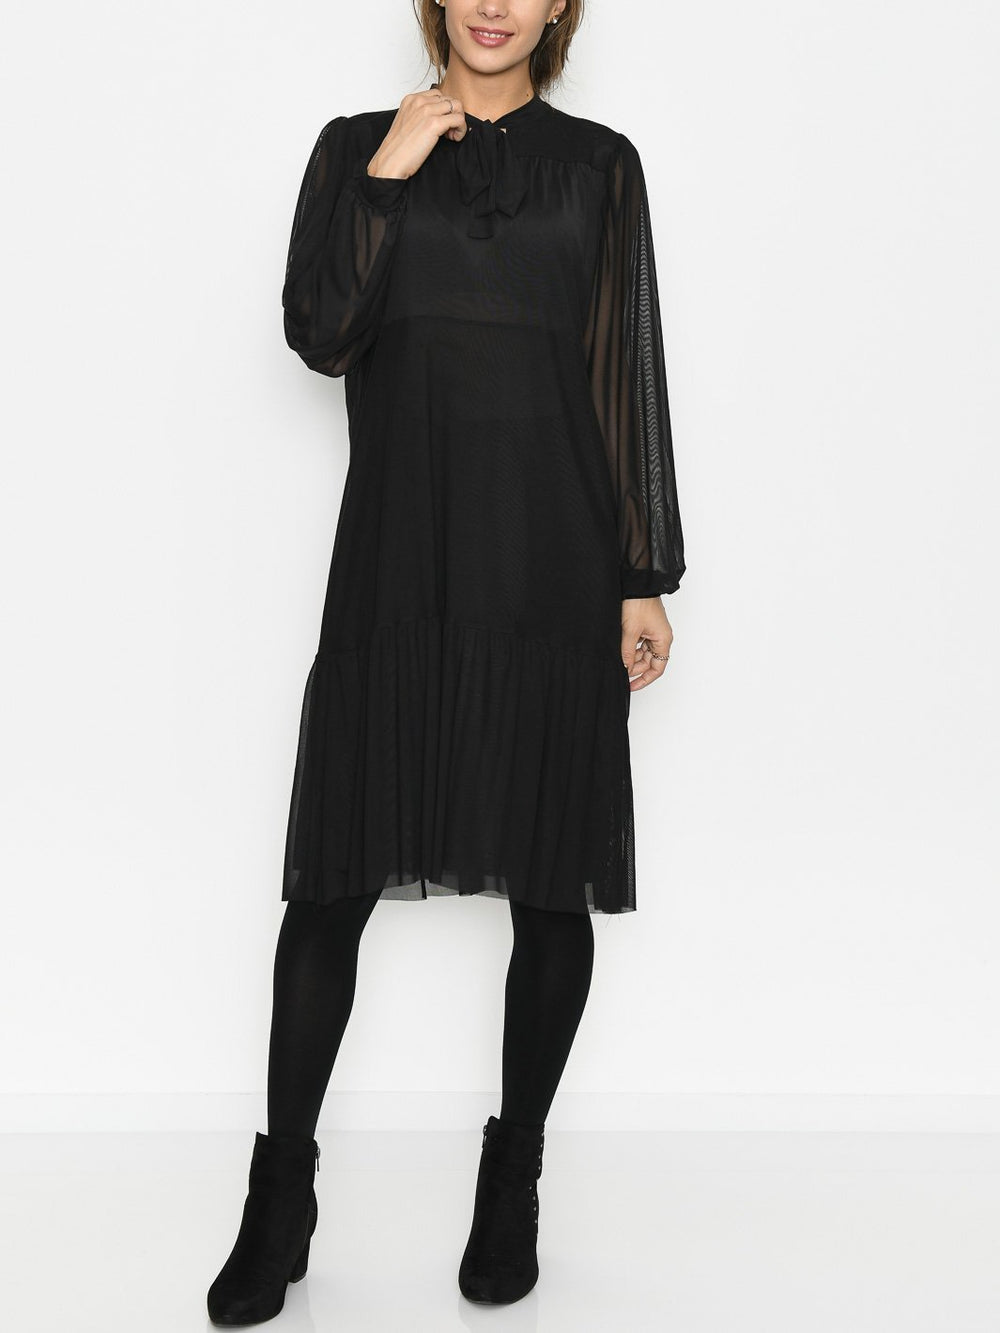 Luxzuz Salca dress black - Online-Mode